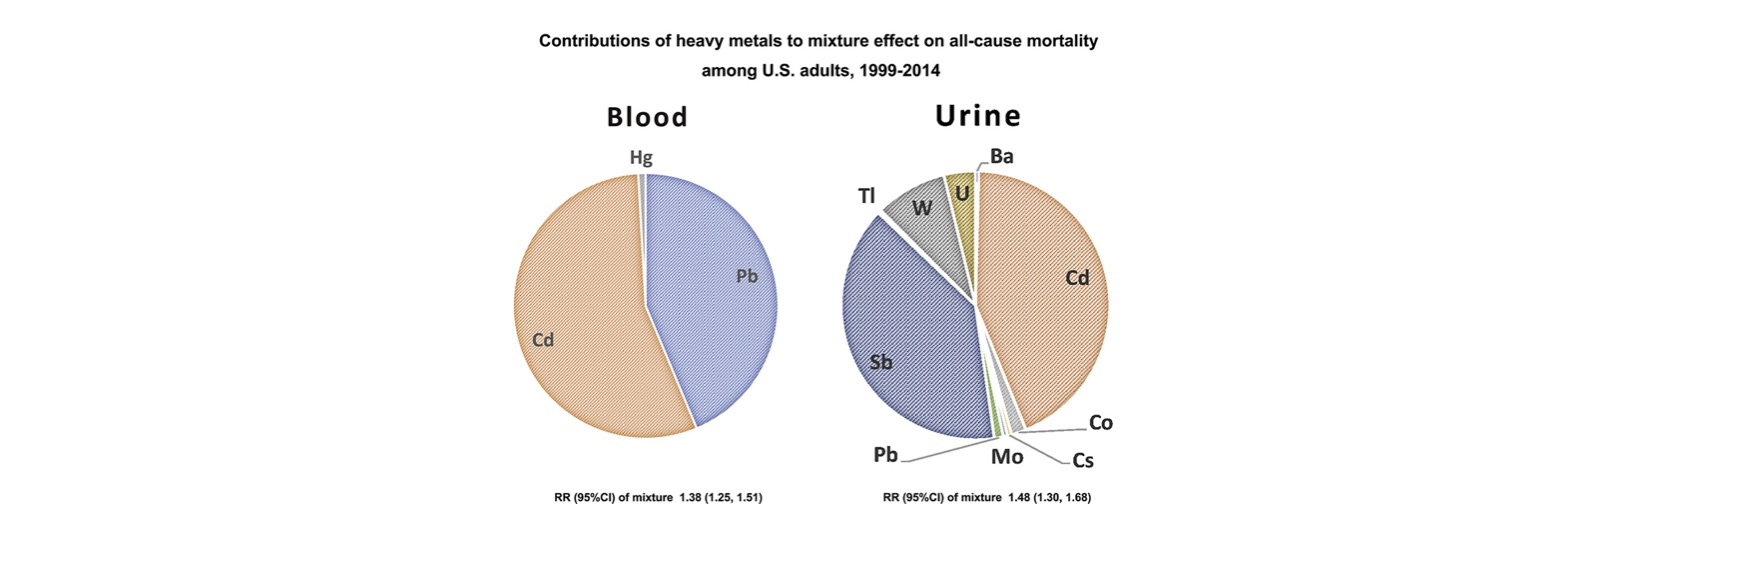 Levels of heavy metals in blood and urine associated with increased mortality